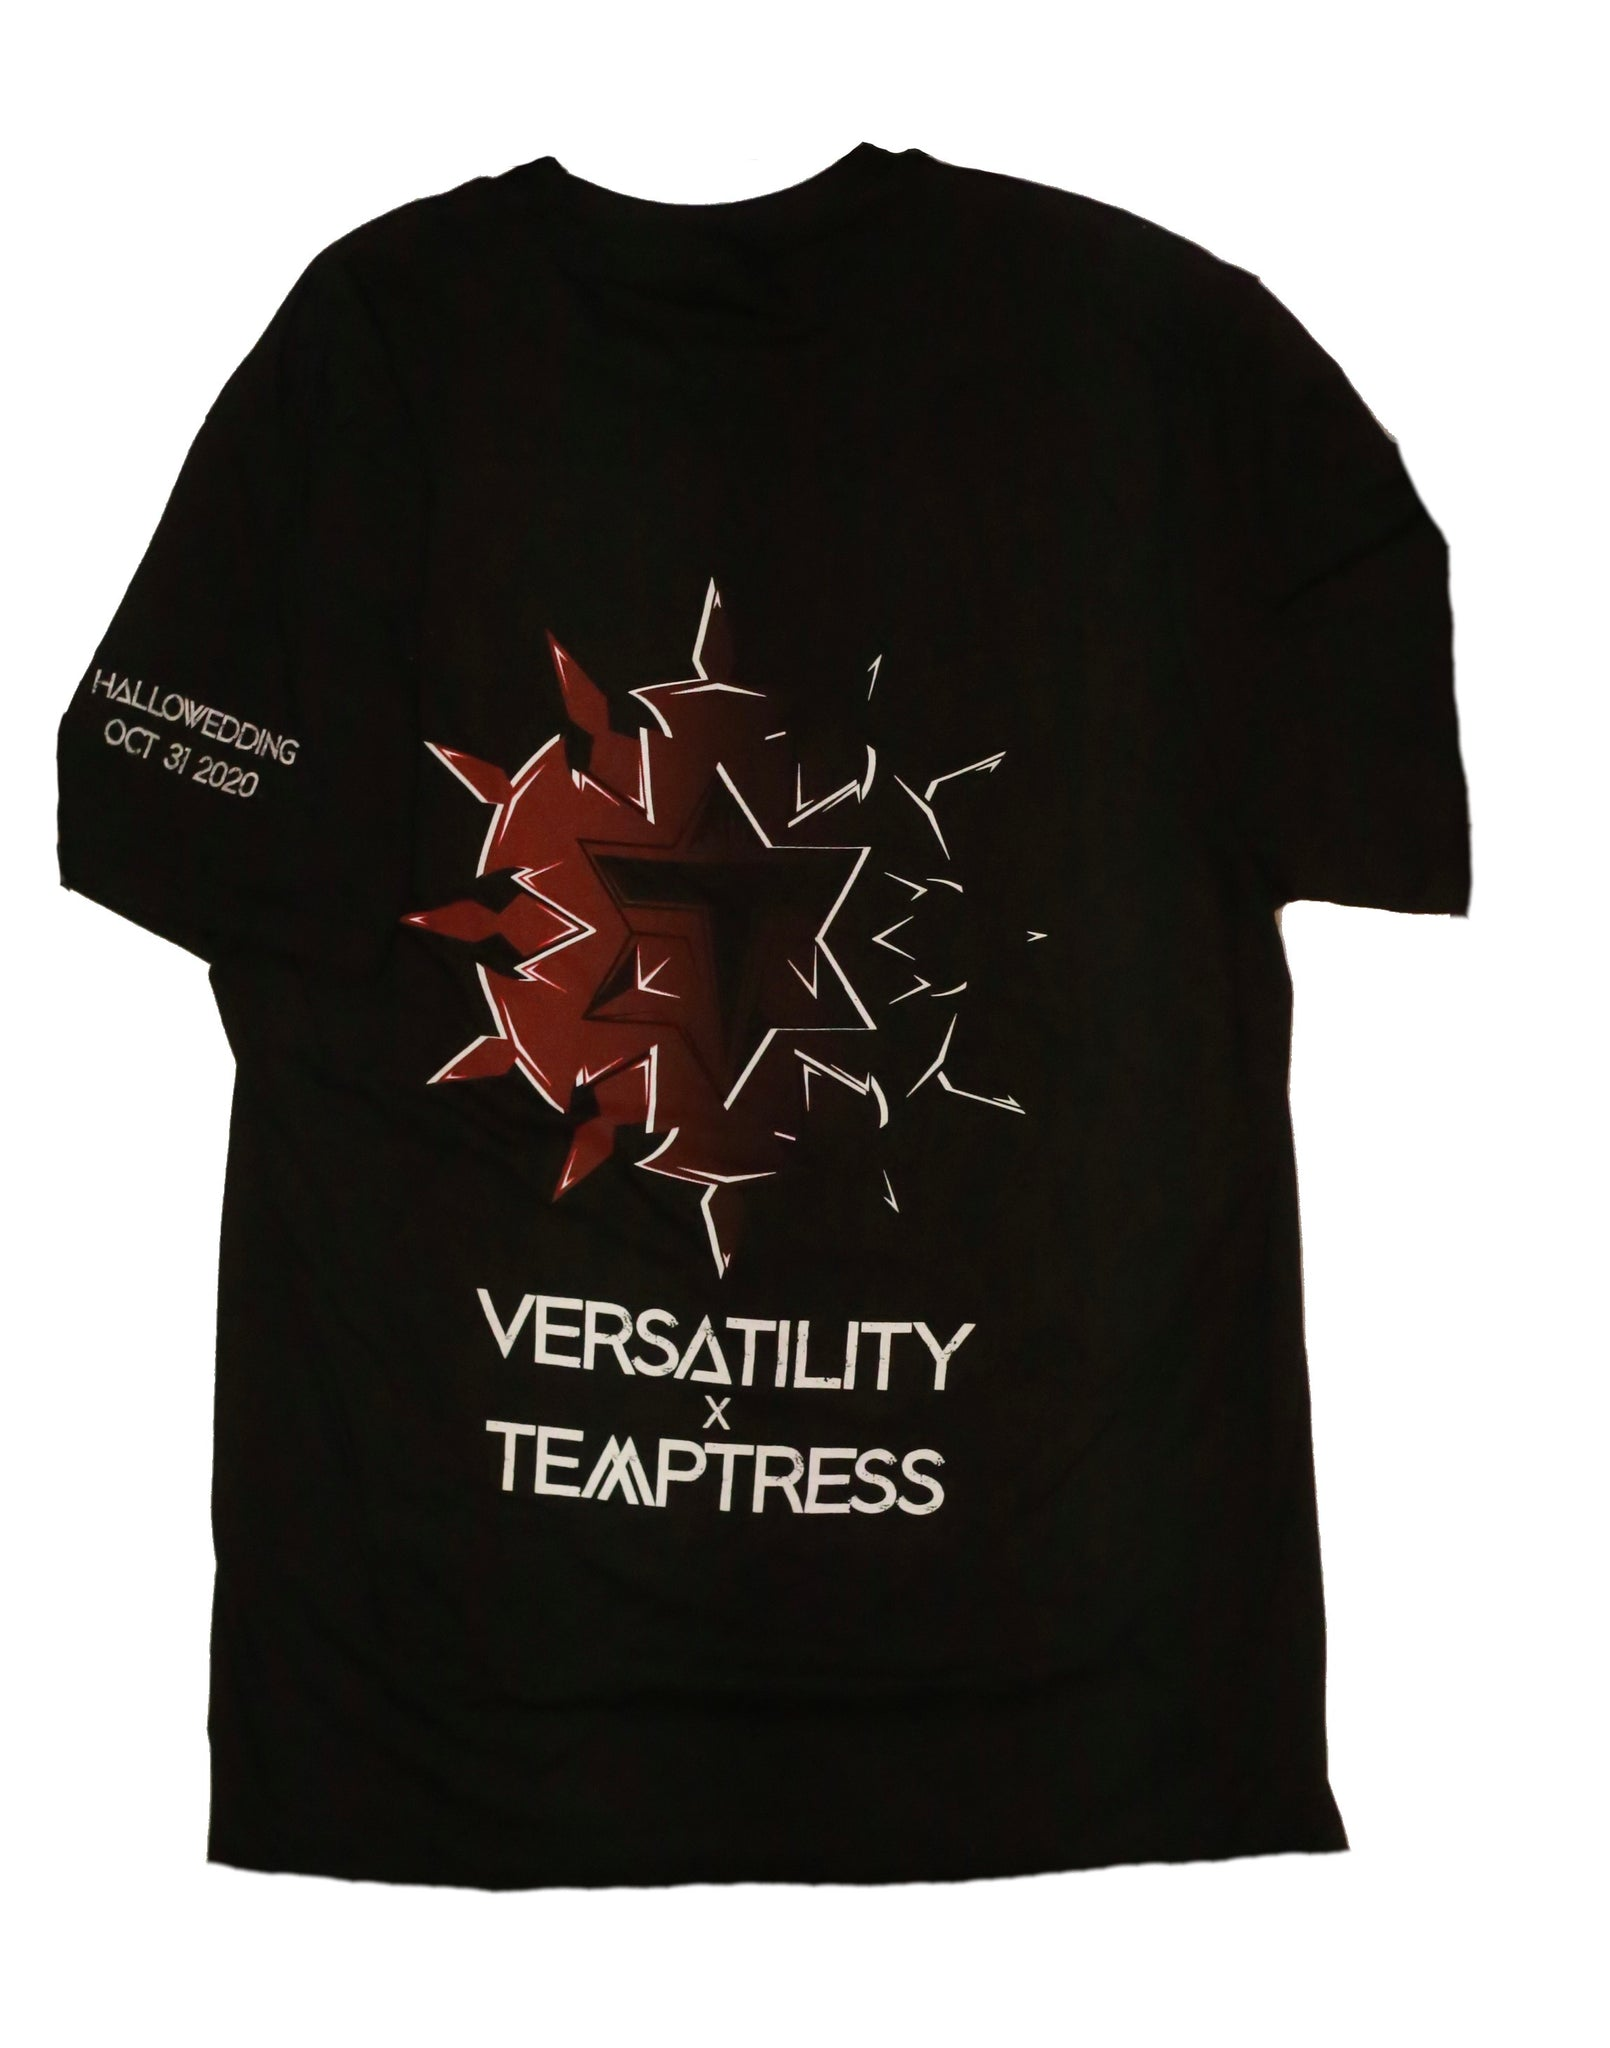 """Versatility x Temptress"" Hallowedding 2020 Exclusive Tee"